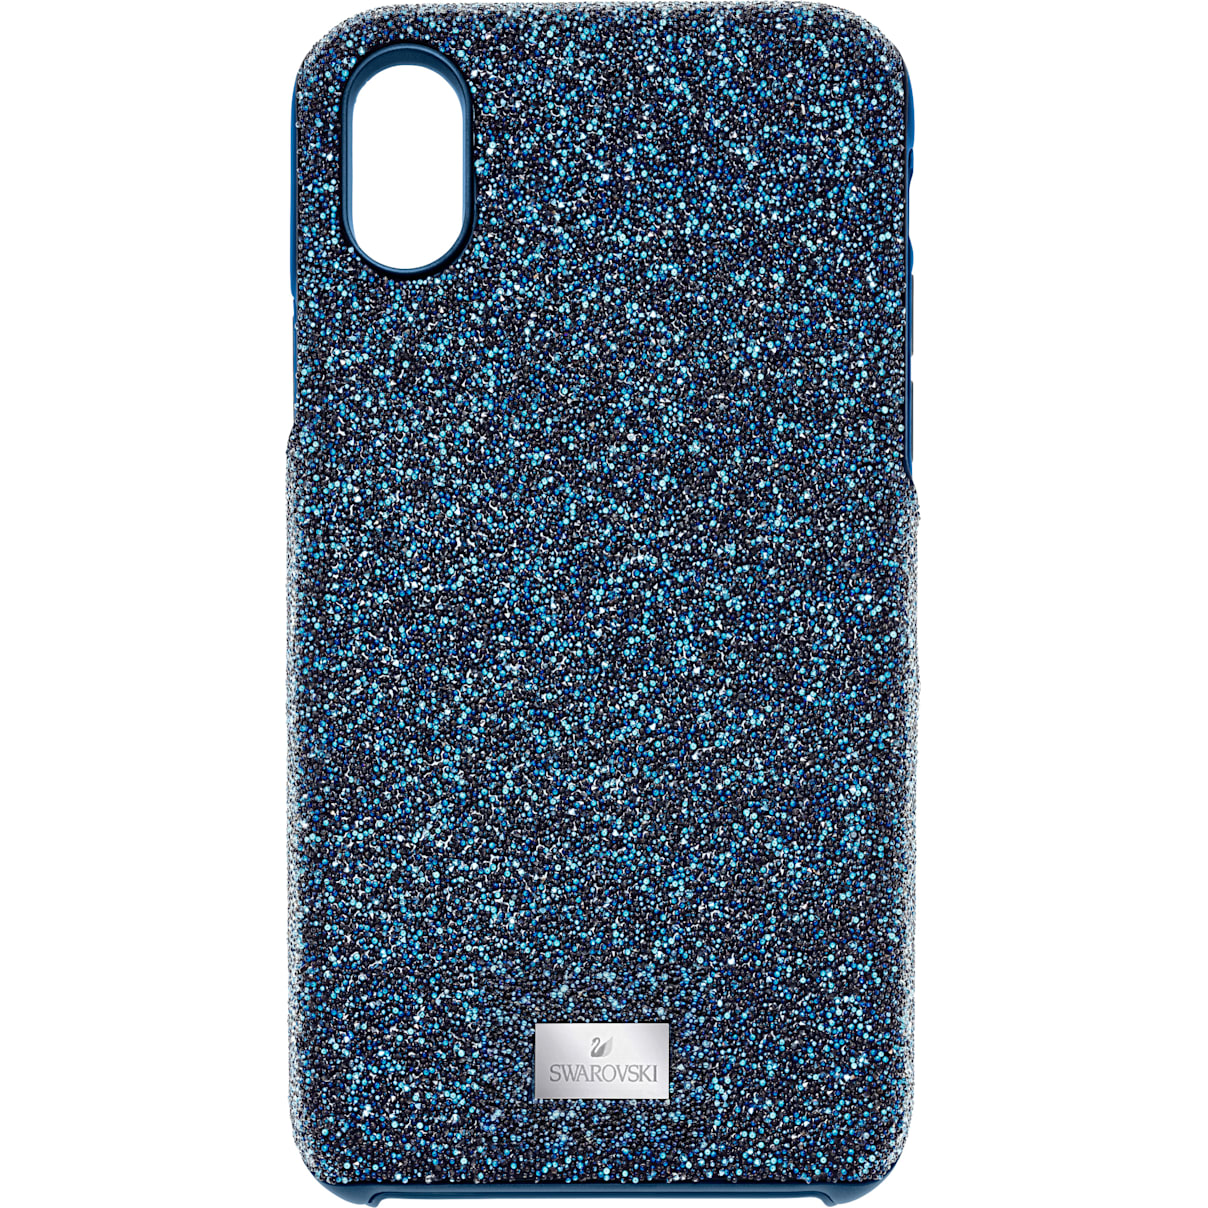 Swarovski High Smartphone Case with integrated Bumper, iPhone® X/XS, Blue